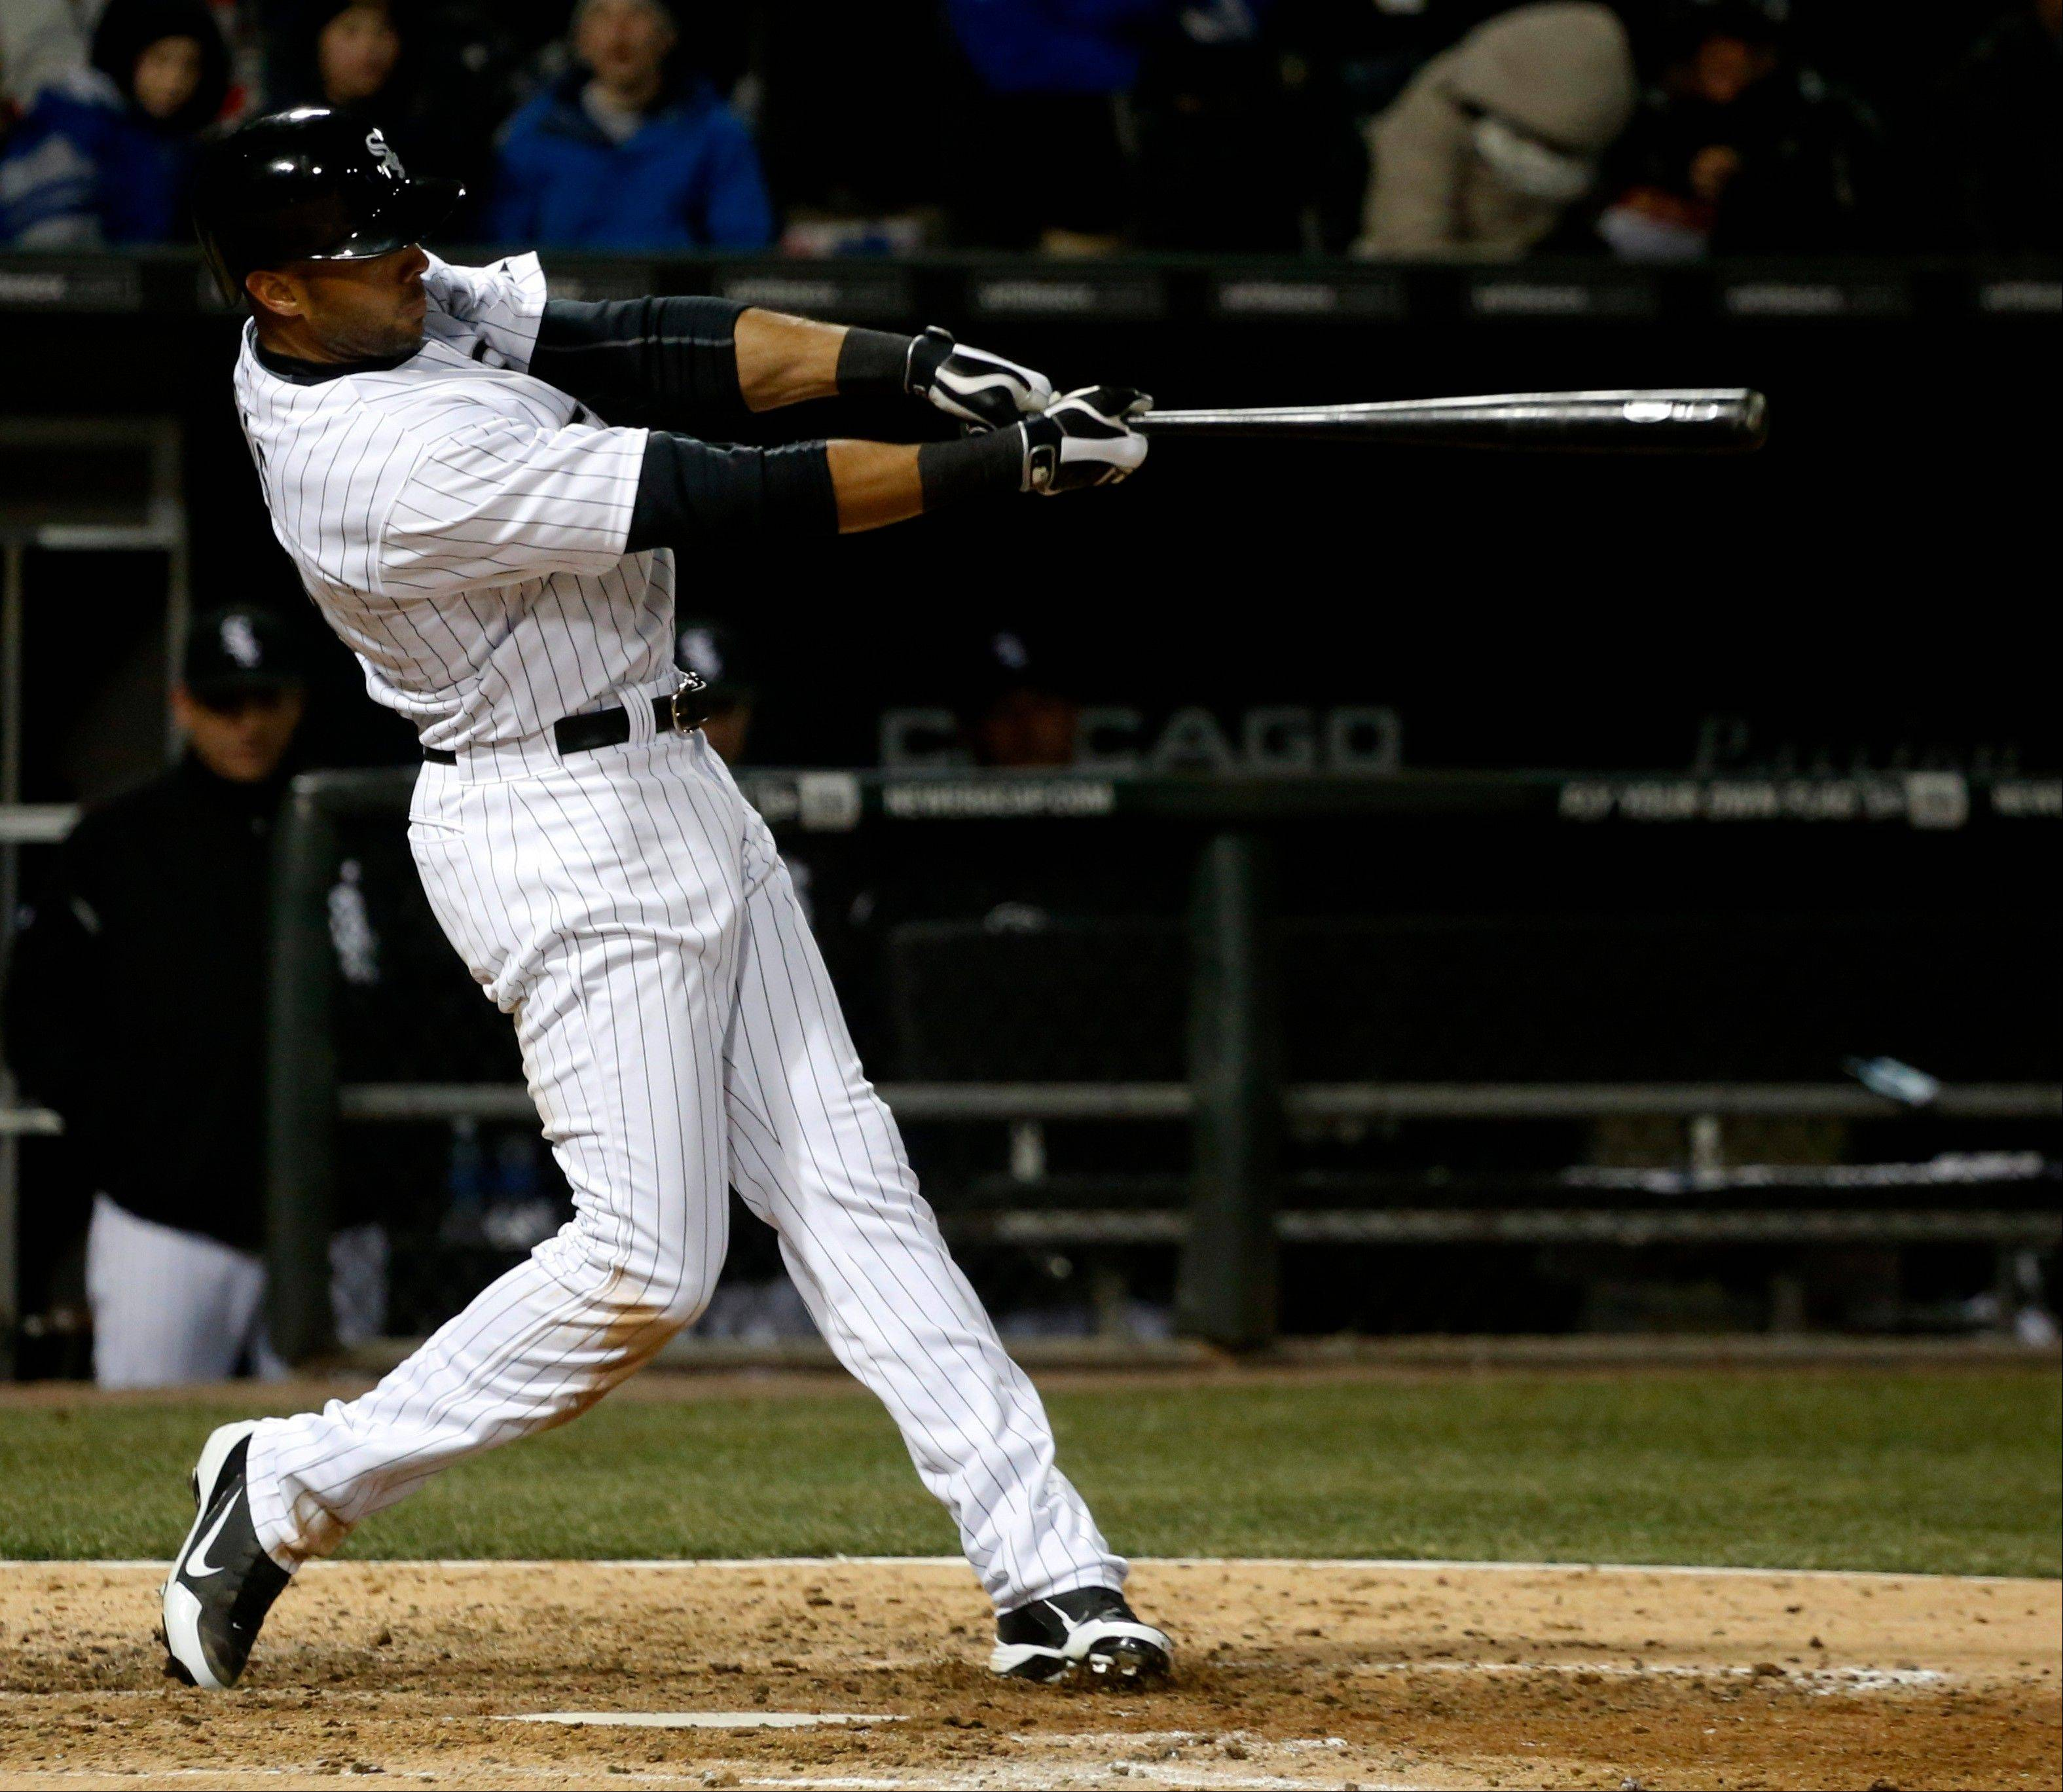 Alex Rios has hit a home run in three straight games for the White Sox.